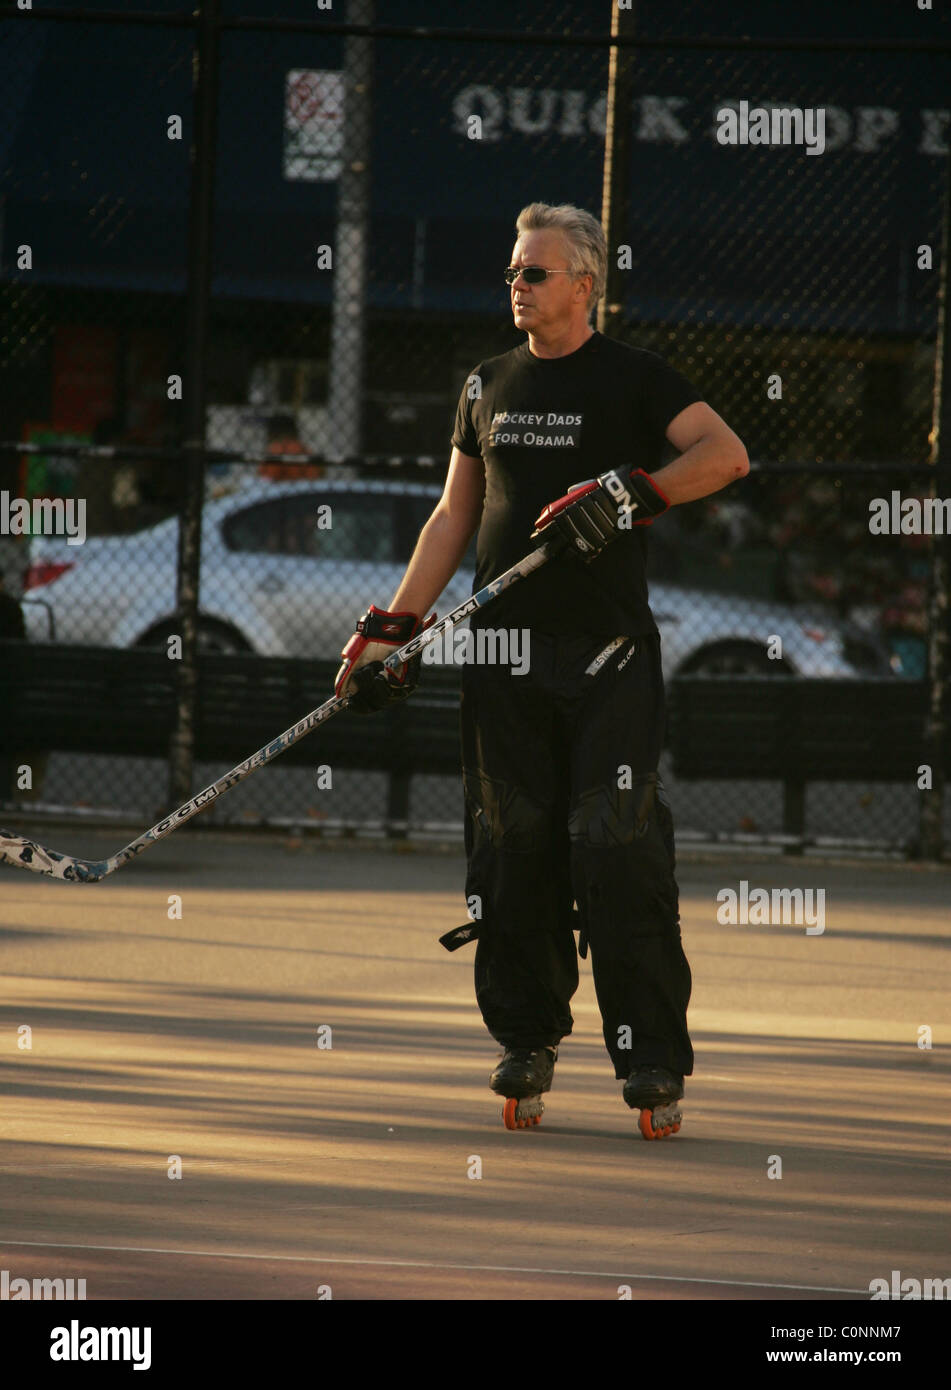 Tim Robbins plays a game of street hockey in Manhattan. With the US elections close, The Oscar winning actor shows - Stock Image